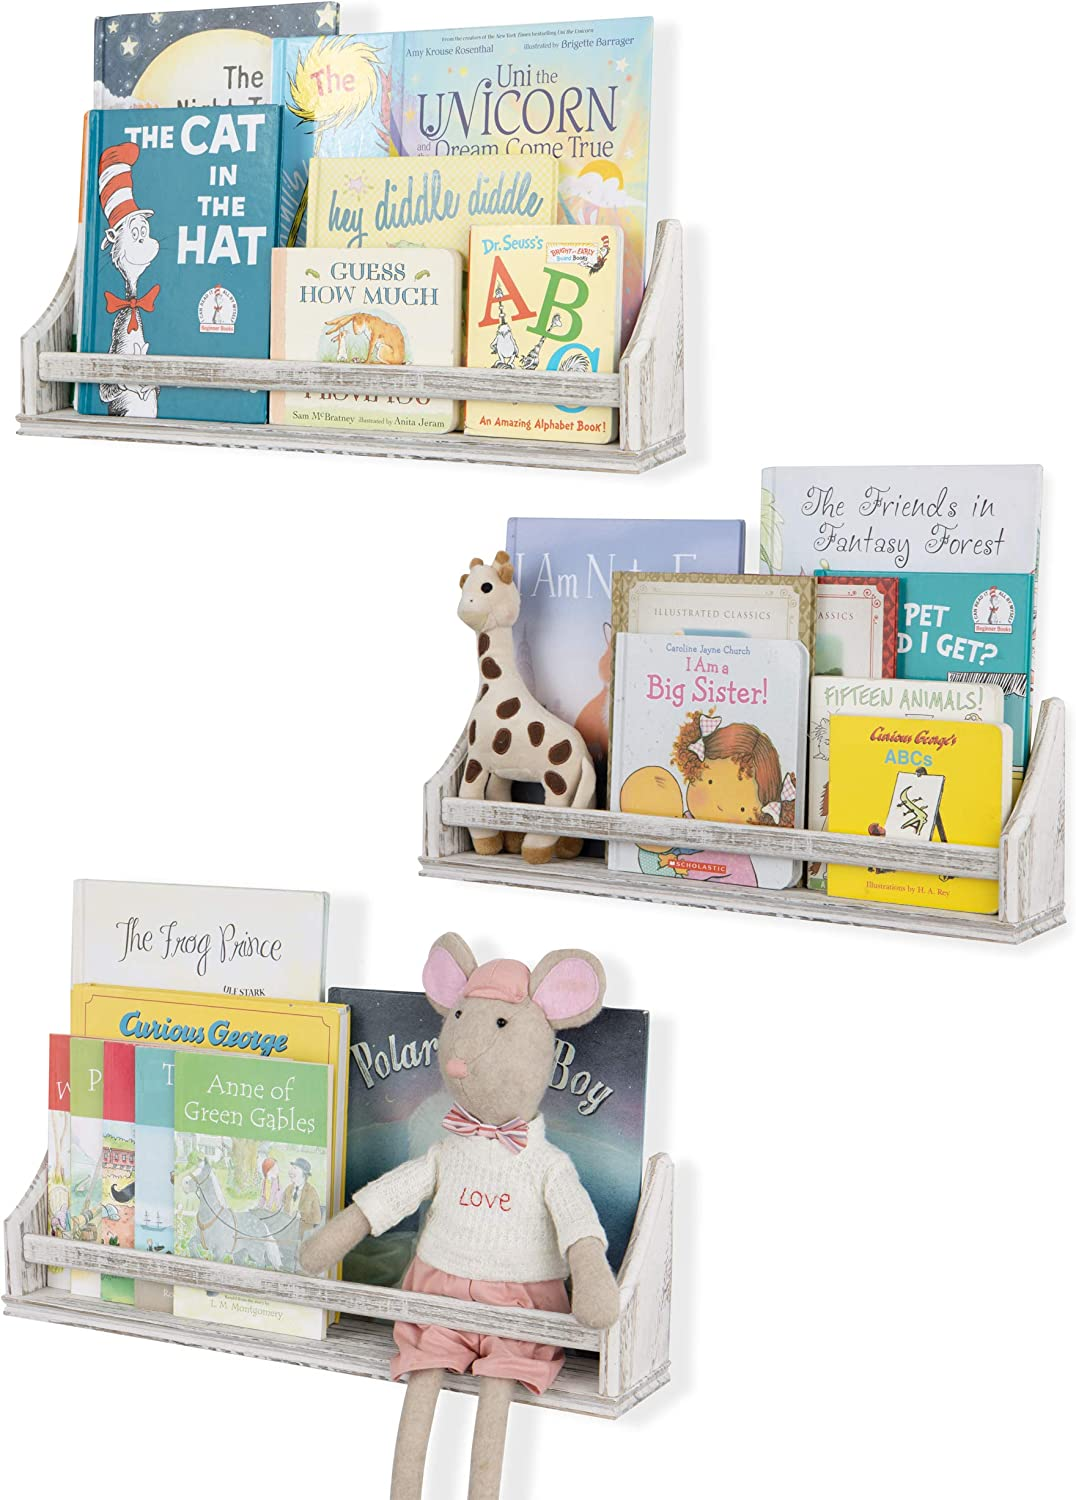 Nursery Décor Wall Shelves 3 Shelf Set Rustic Burnt White Long Crown Molding Floating Bookshelves for Baby and Kids Room, Book Organizer Storage Ledge, Display Holder for Toys, CDs, Baby Monitor